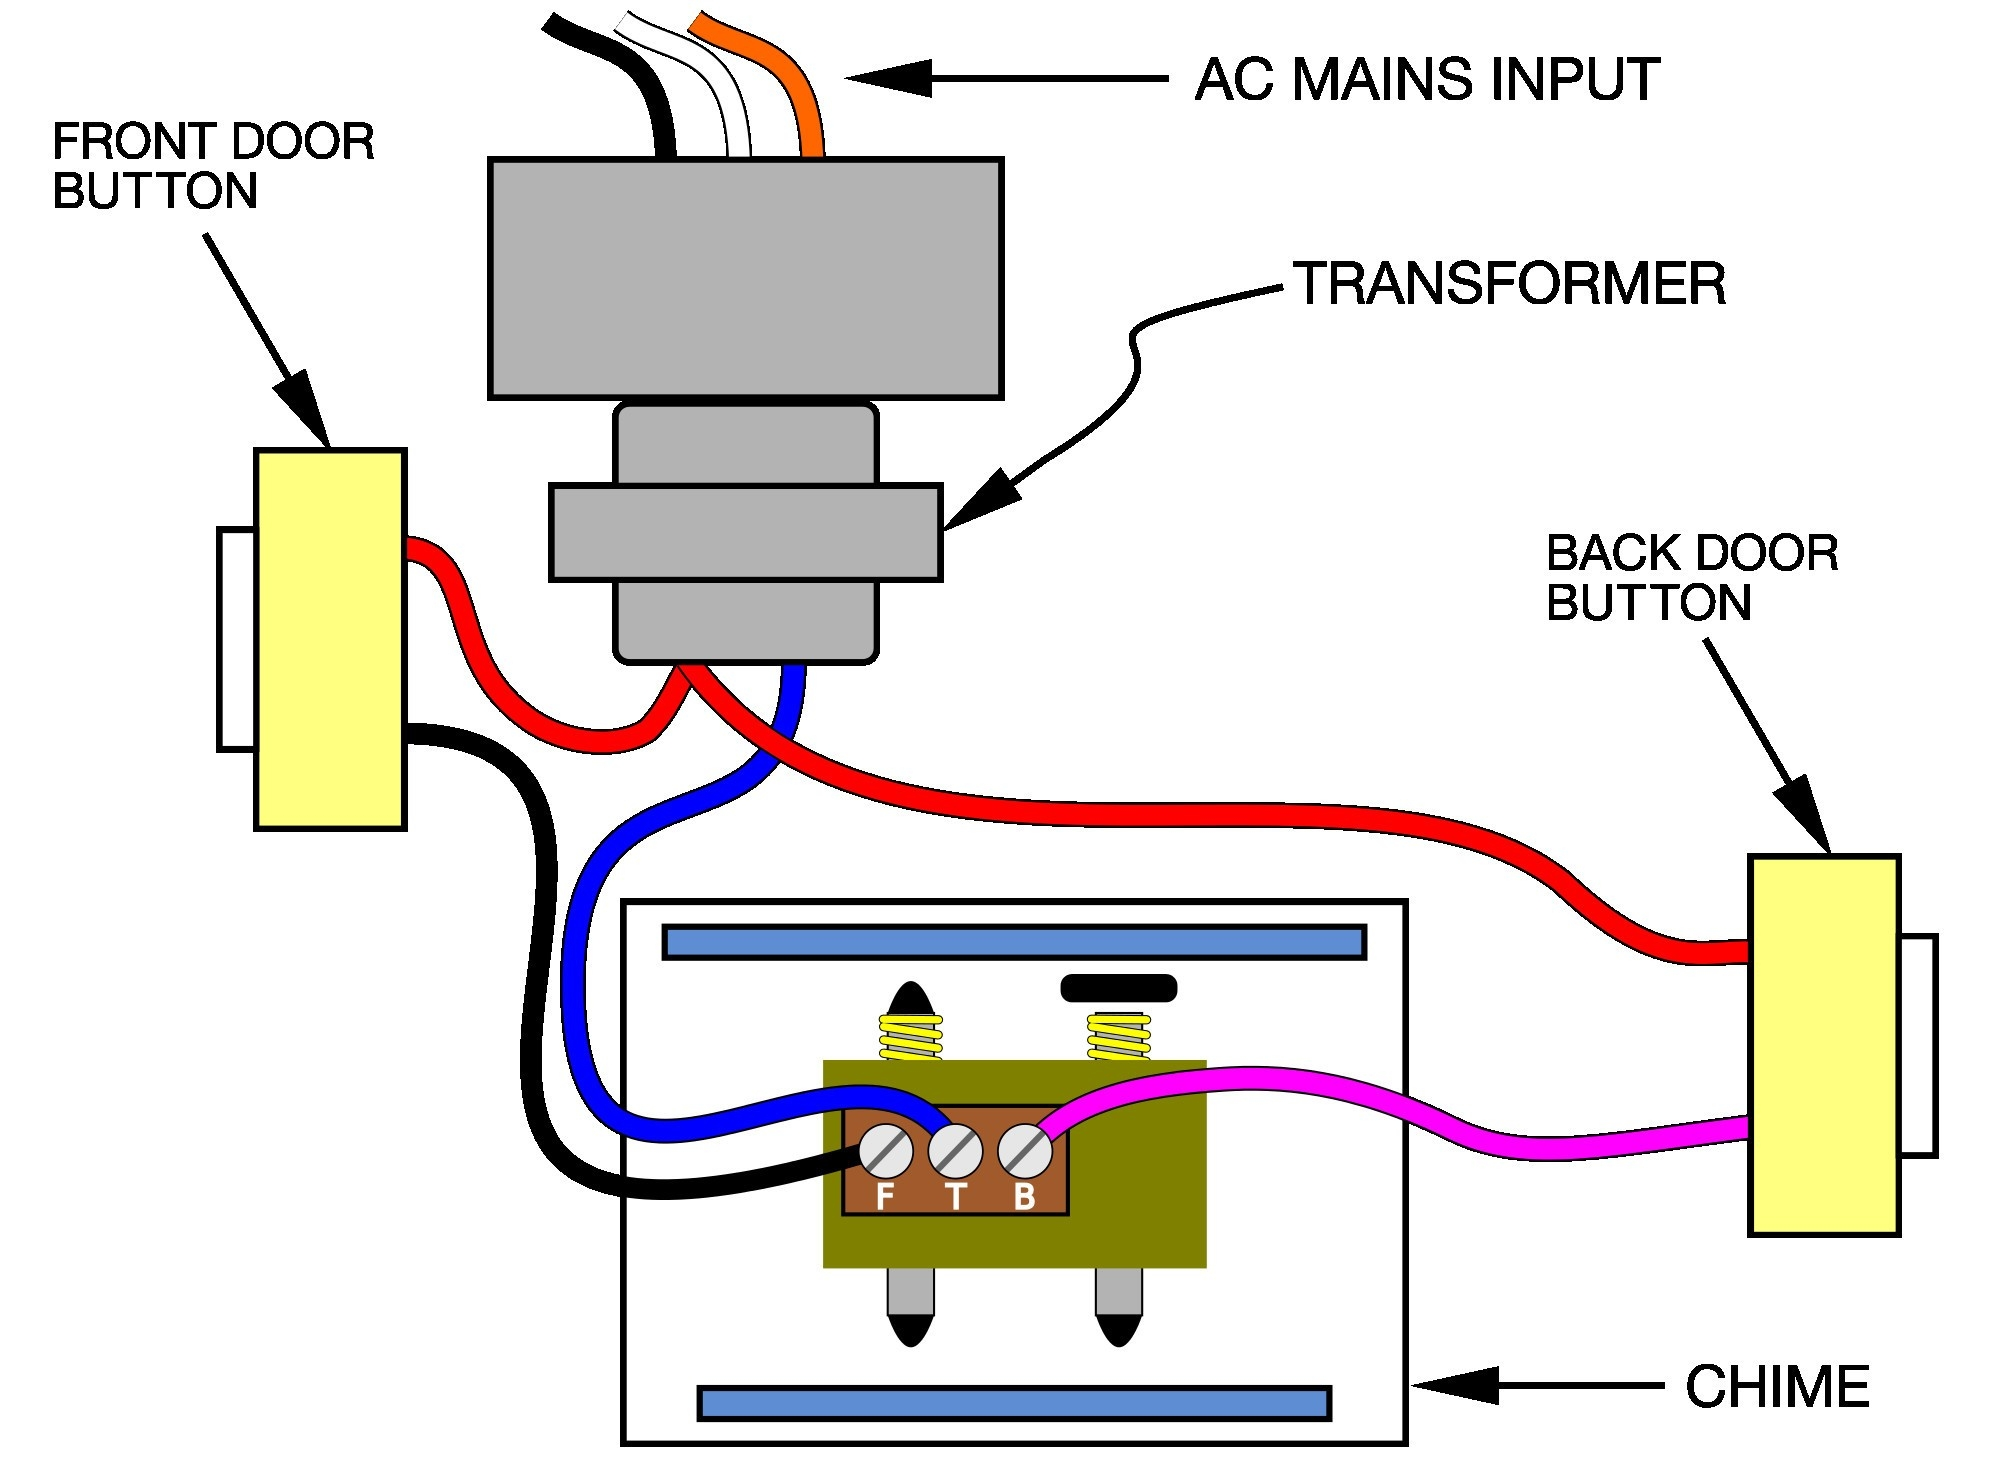 Nutone Doorbell Wiring Diagram - Wiring Diagram for Nutone Doorbell New Wiring  Diagram for Doorbell Transformer